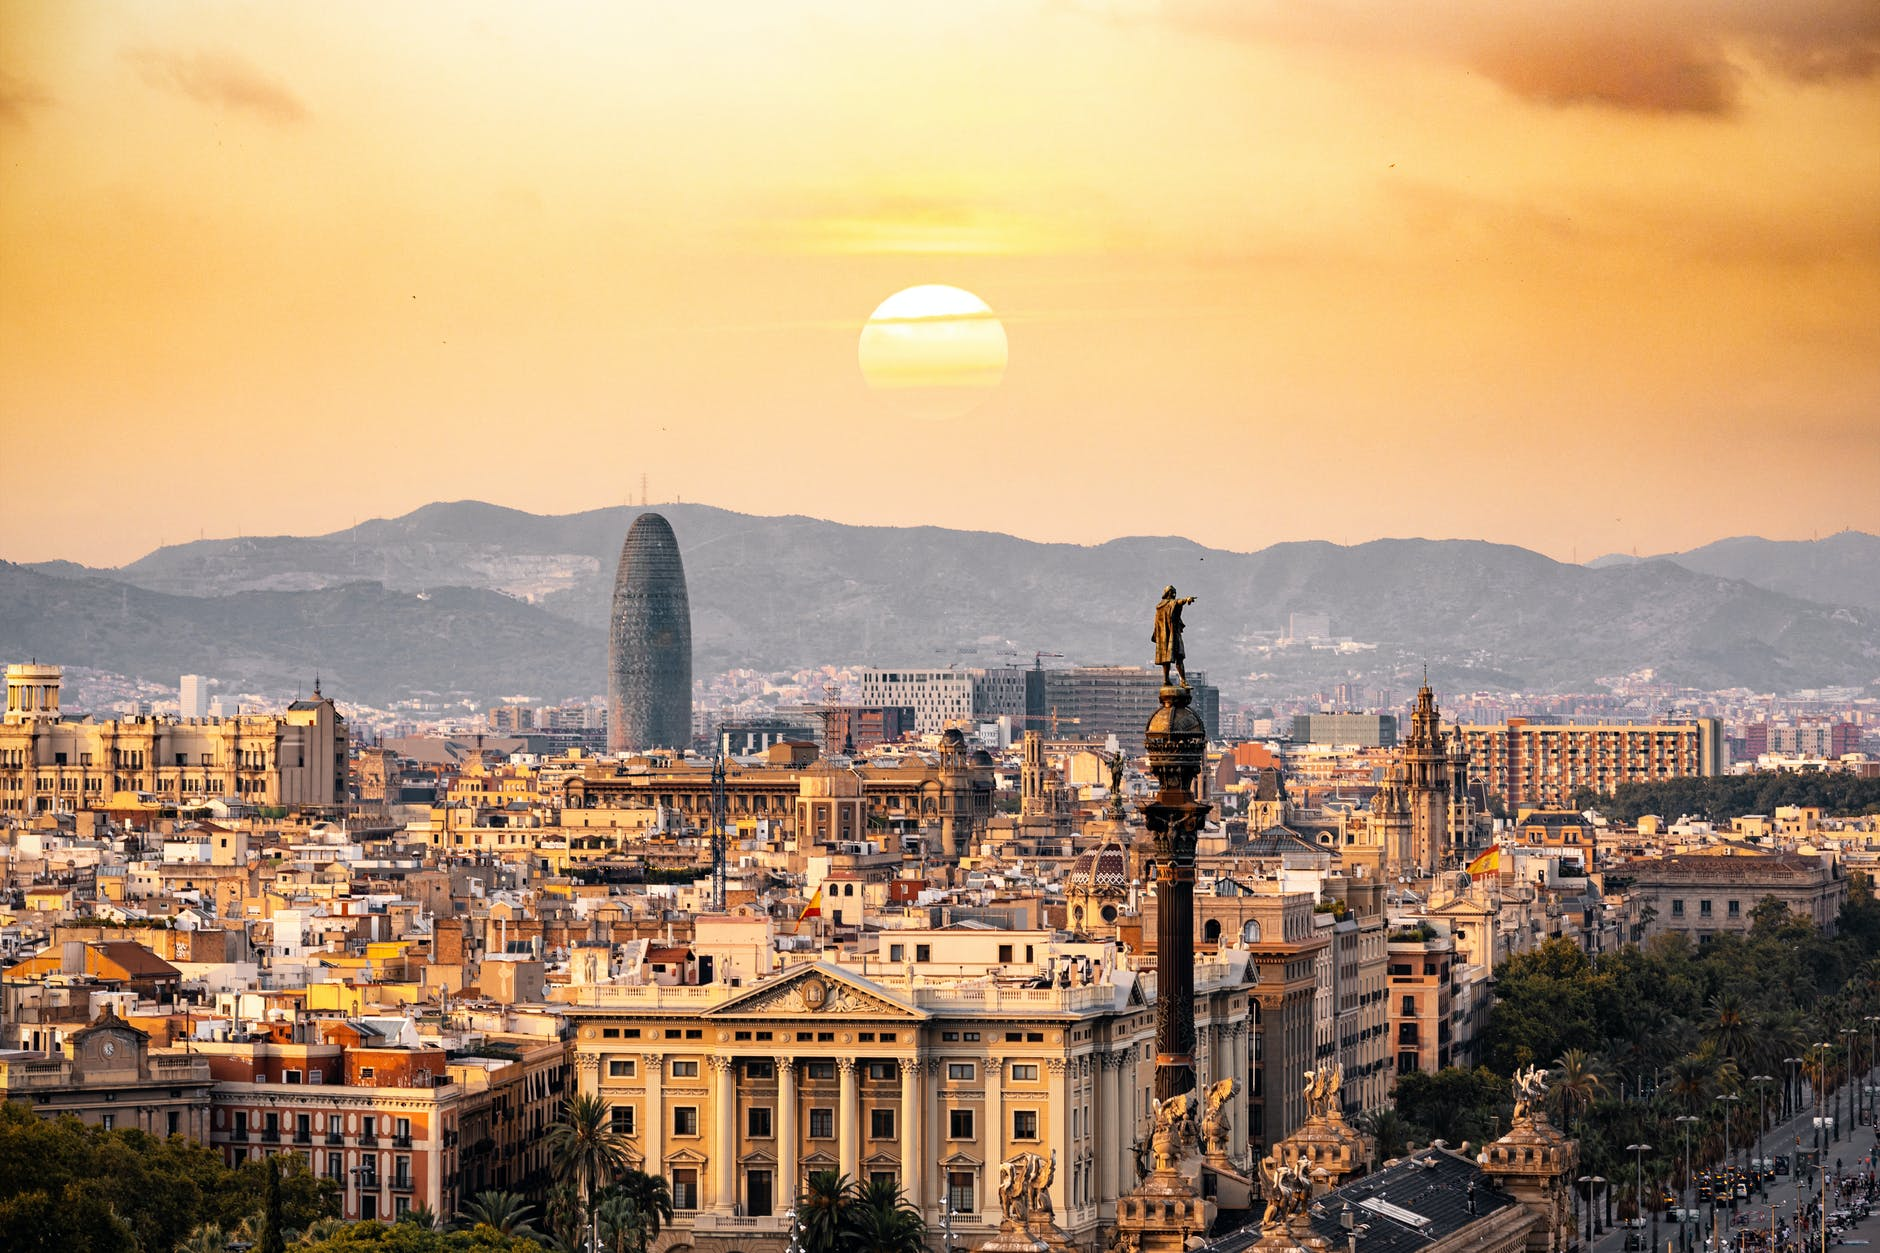 6 Reasons Spain Should Be on Your Travel Bucket List